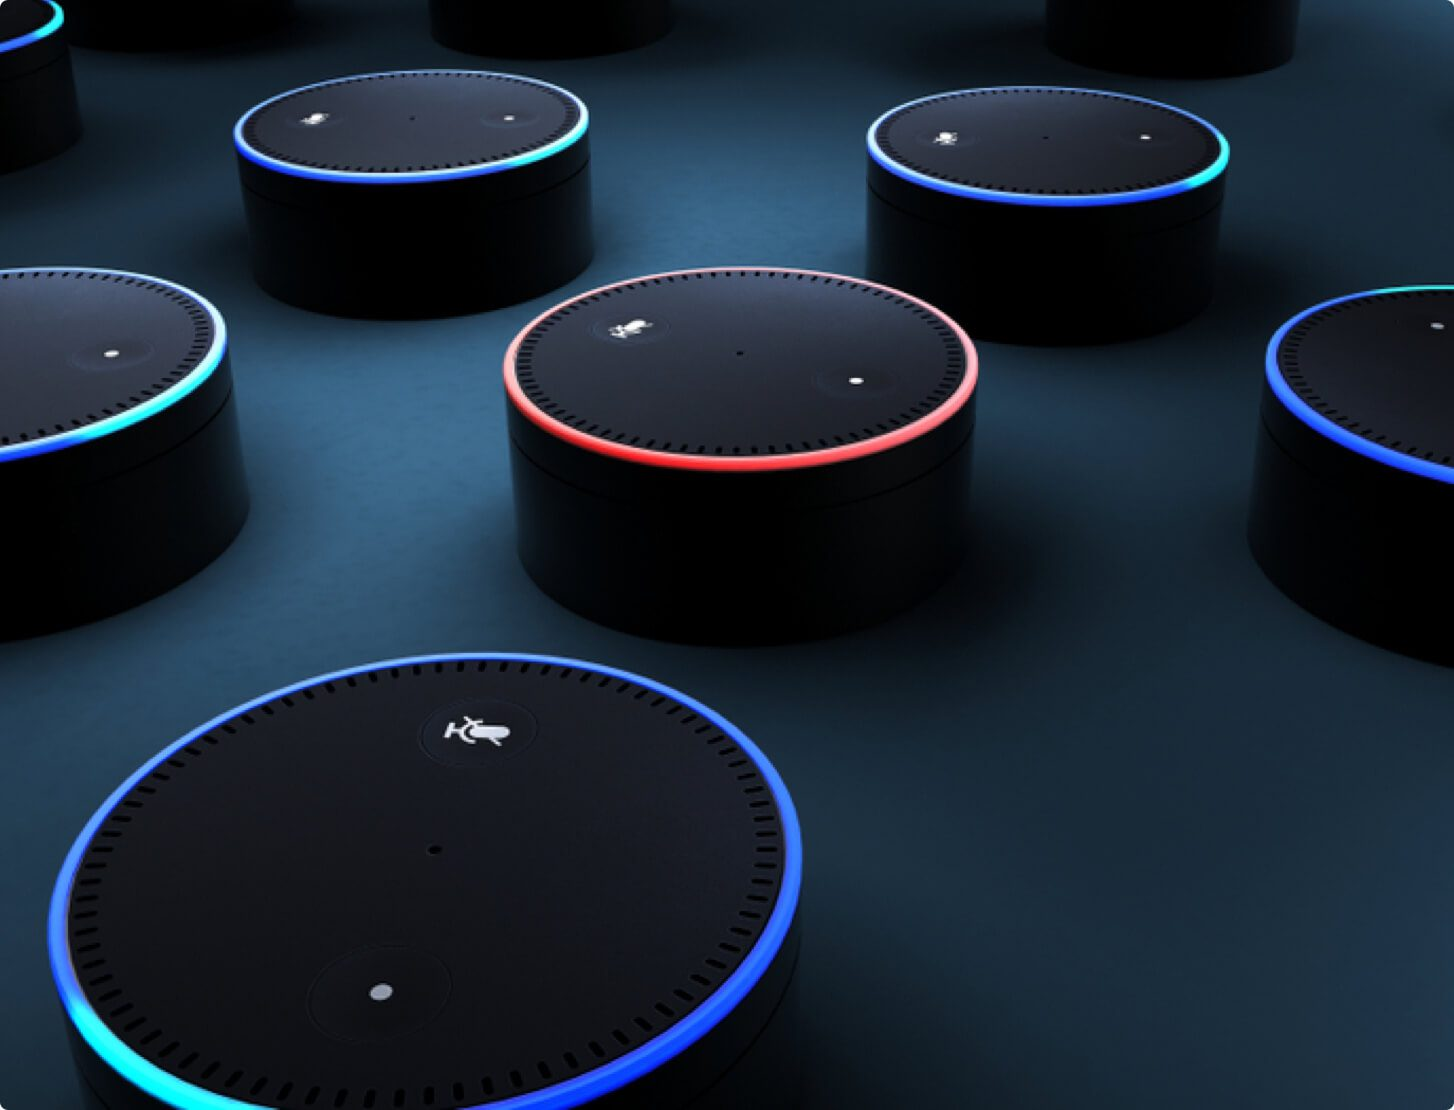 A group of Echo Dots smart speakers